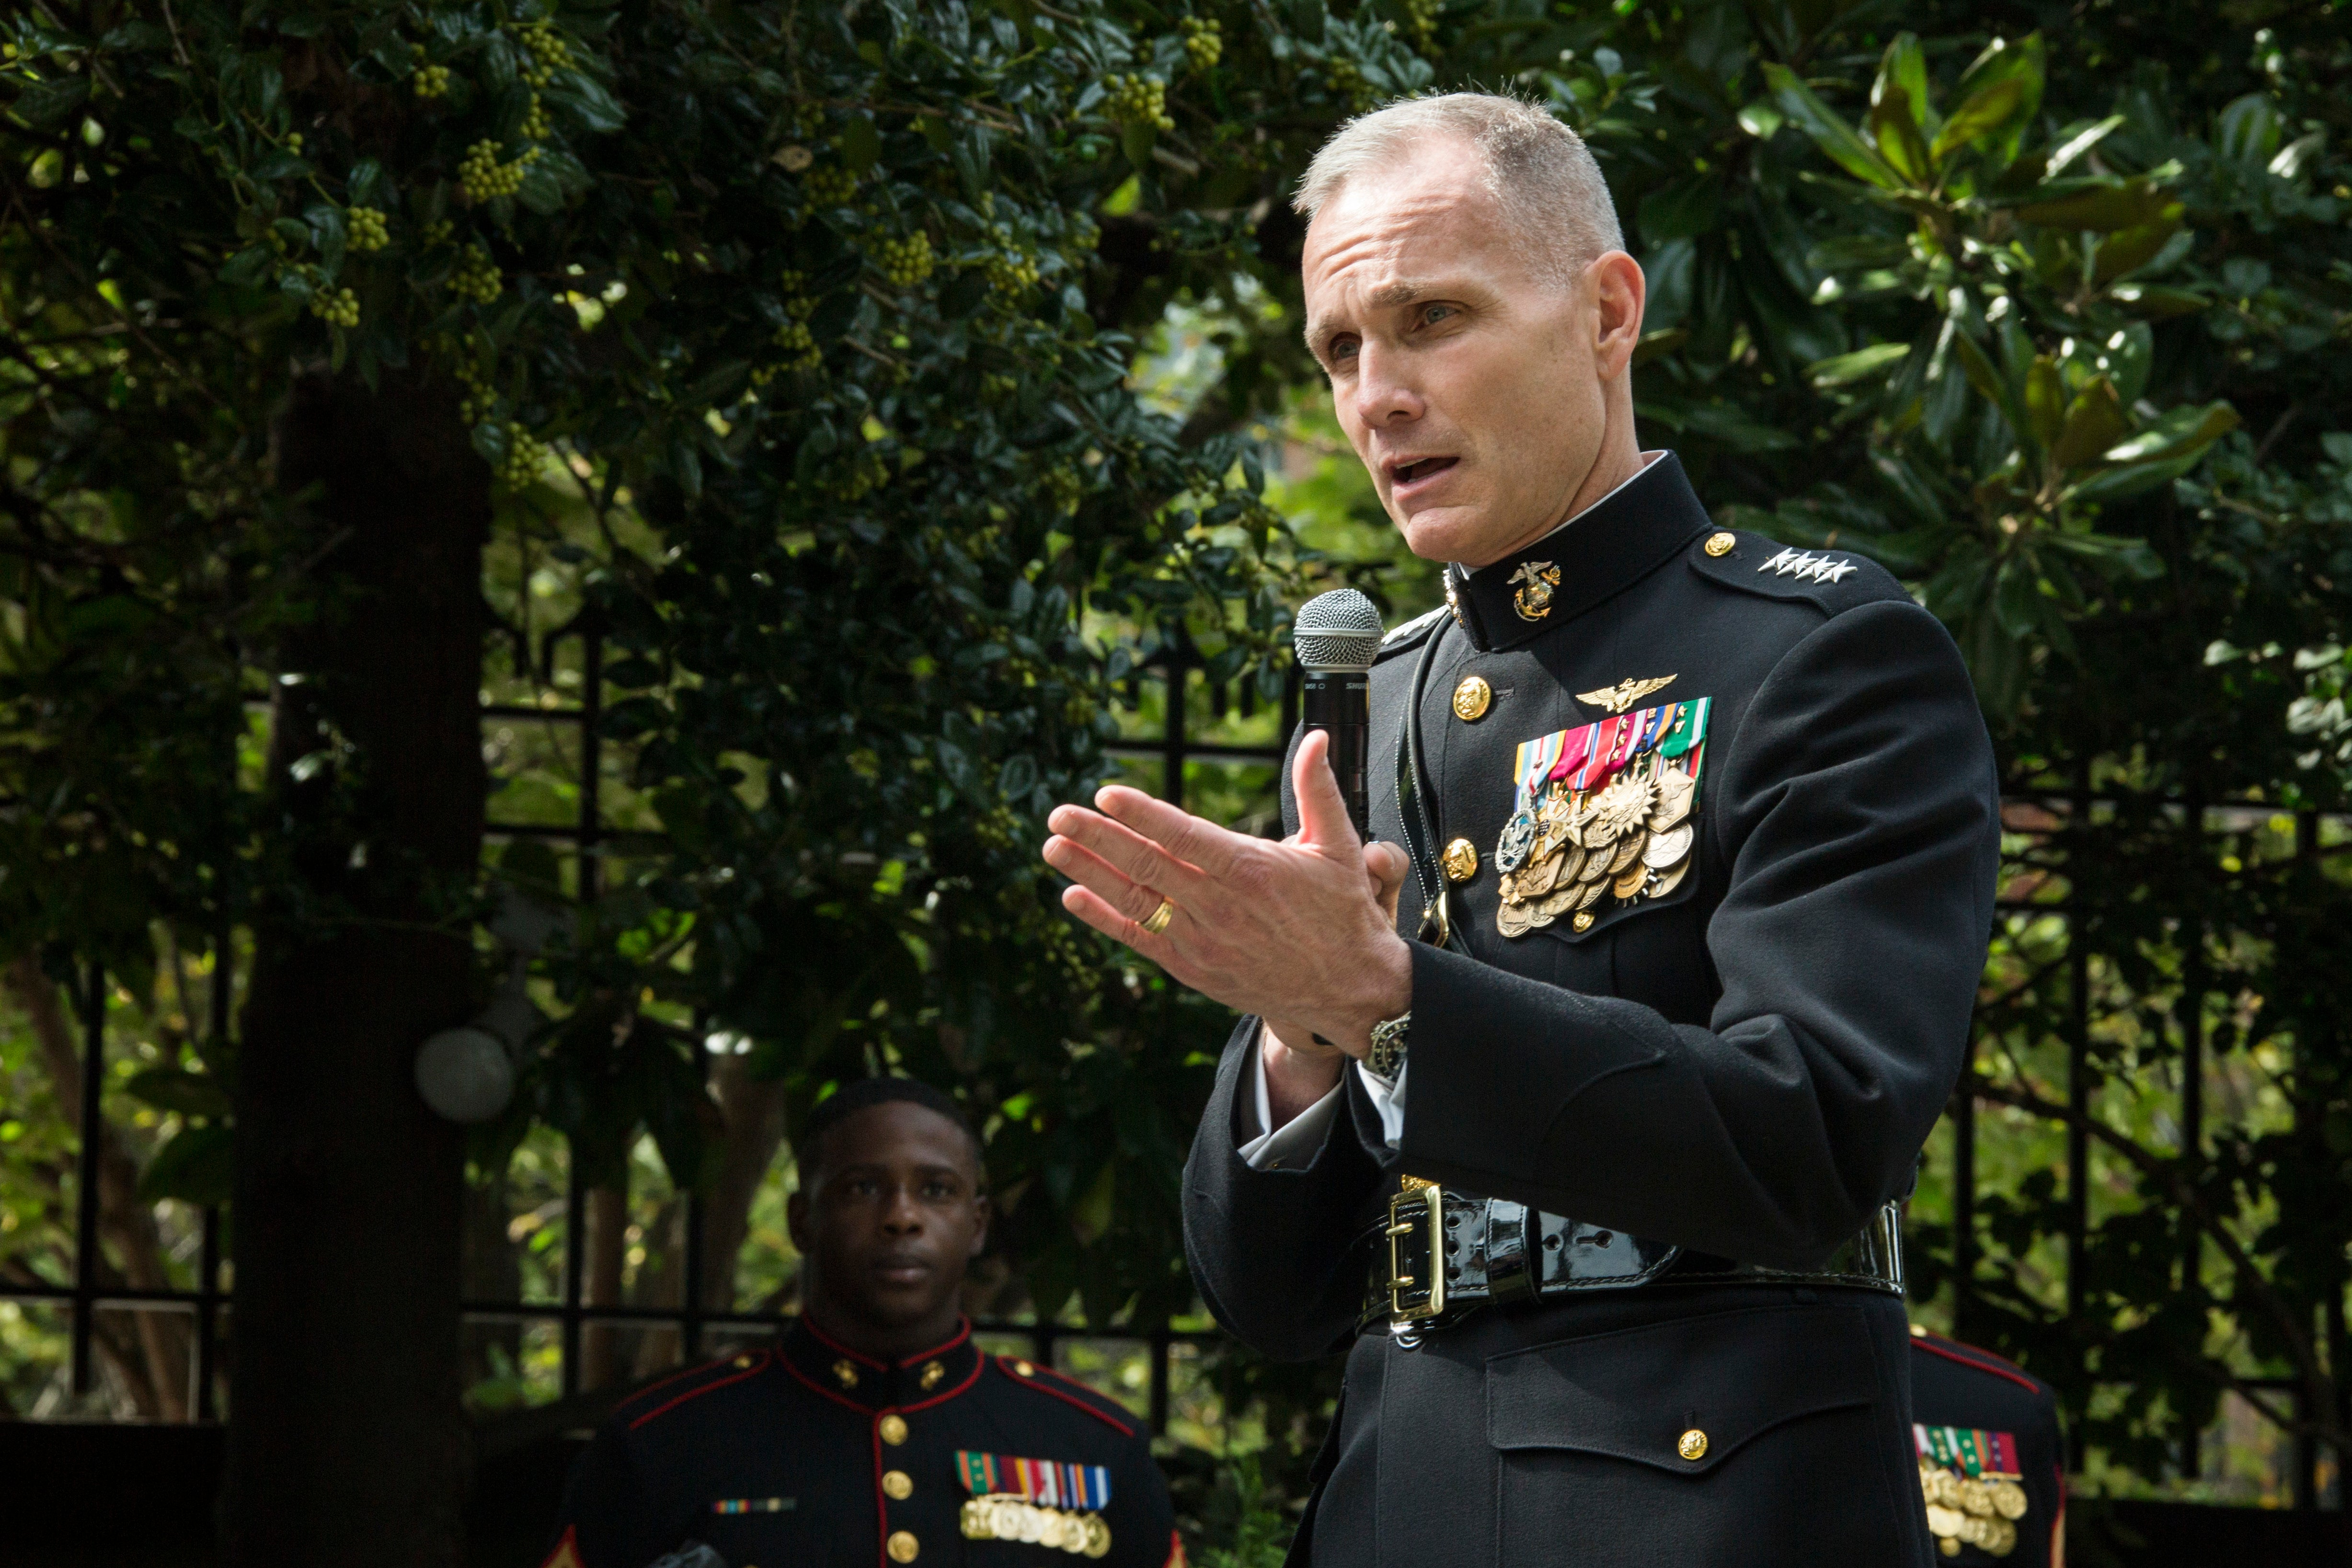 The Marine Corps' #2 officer just tested positive for COVID-19